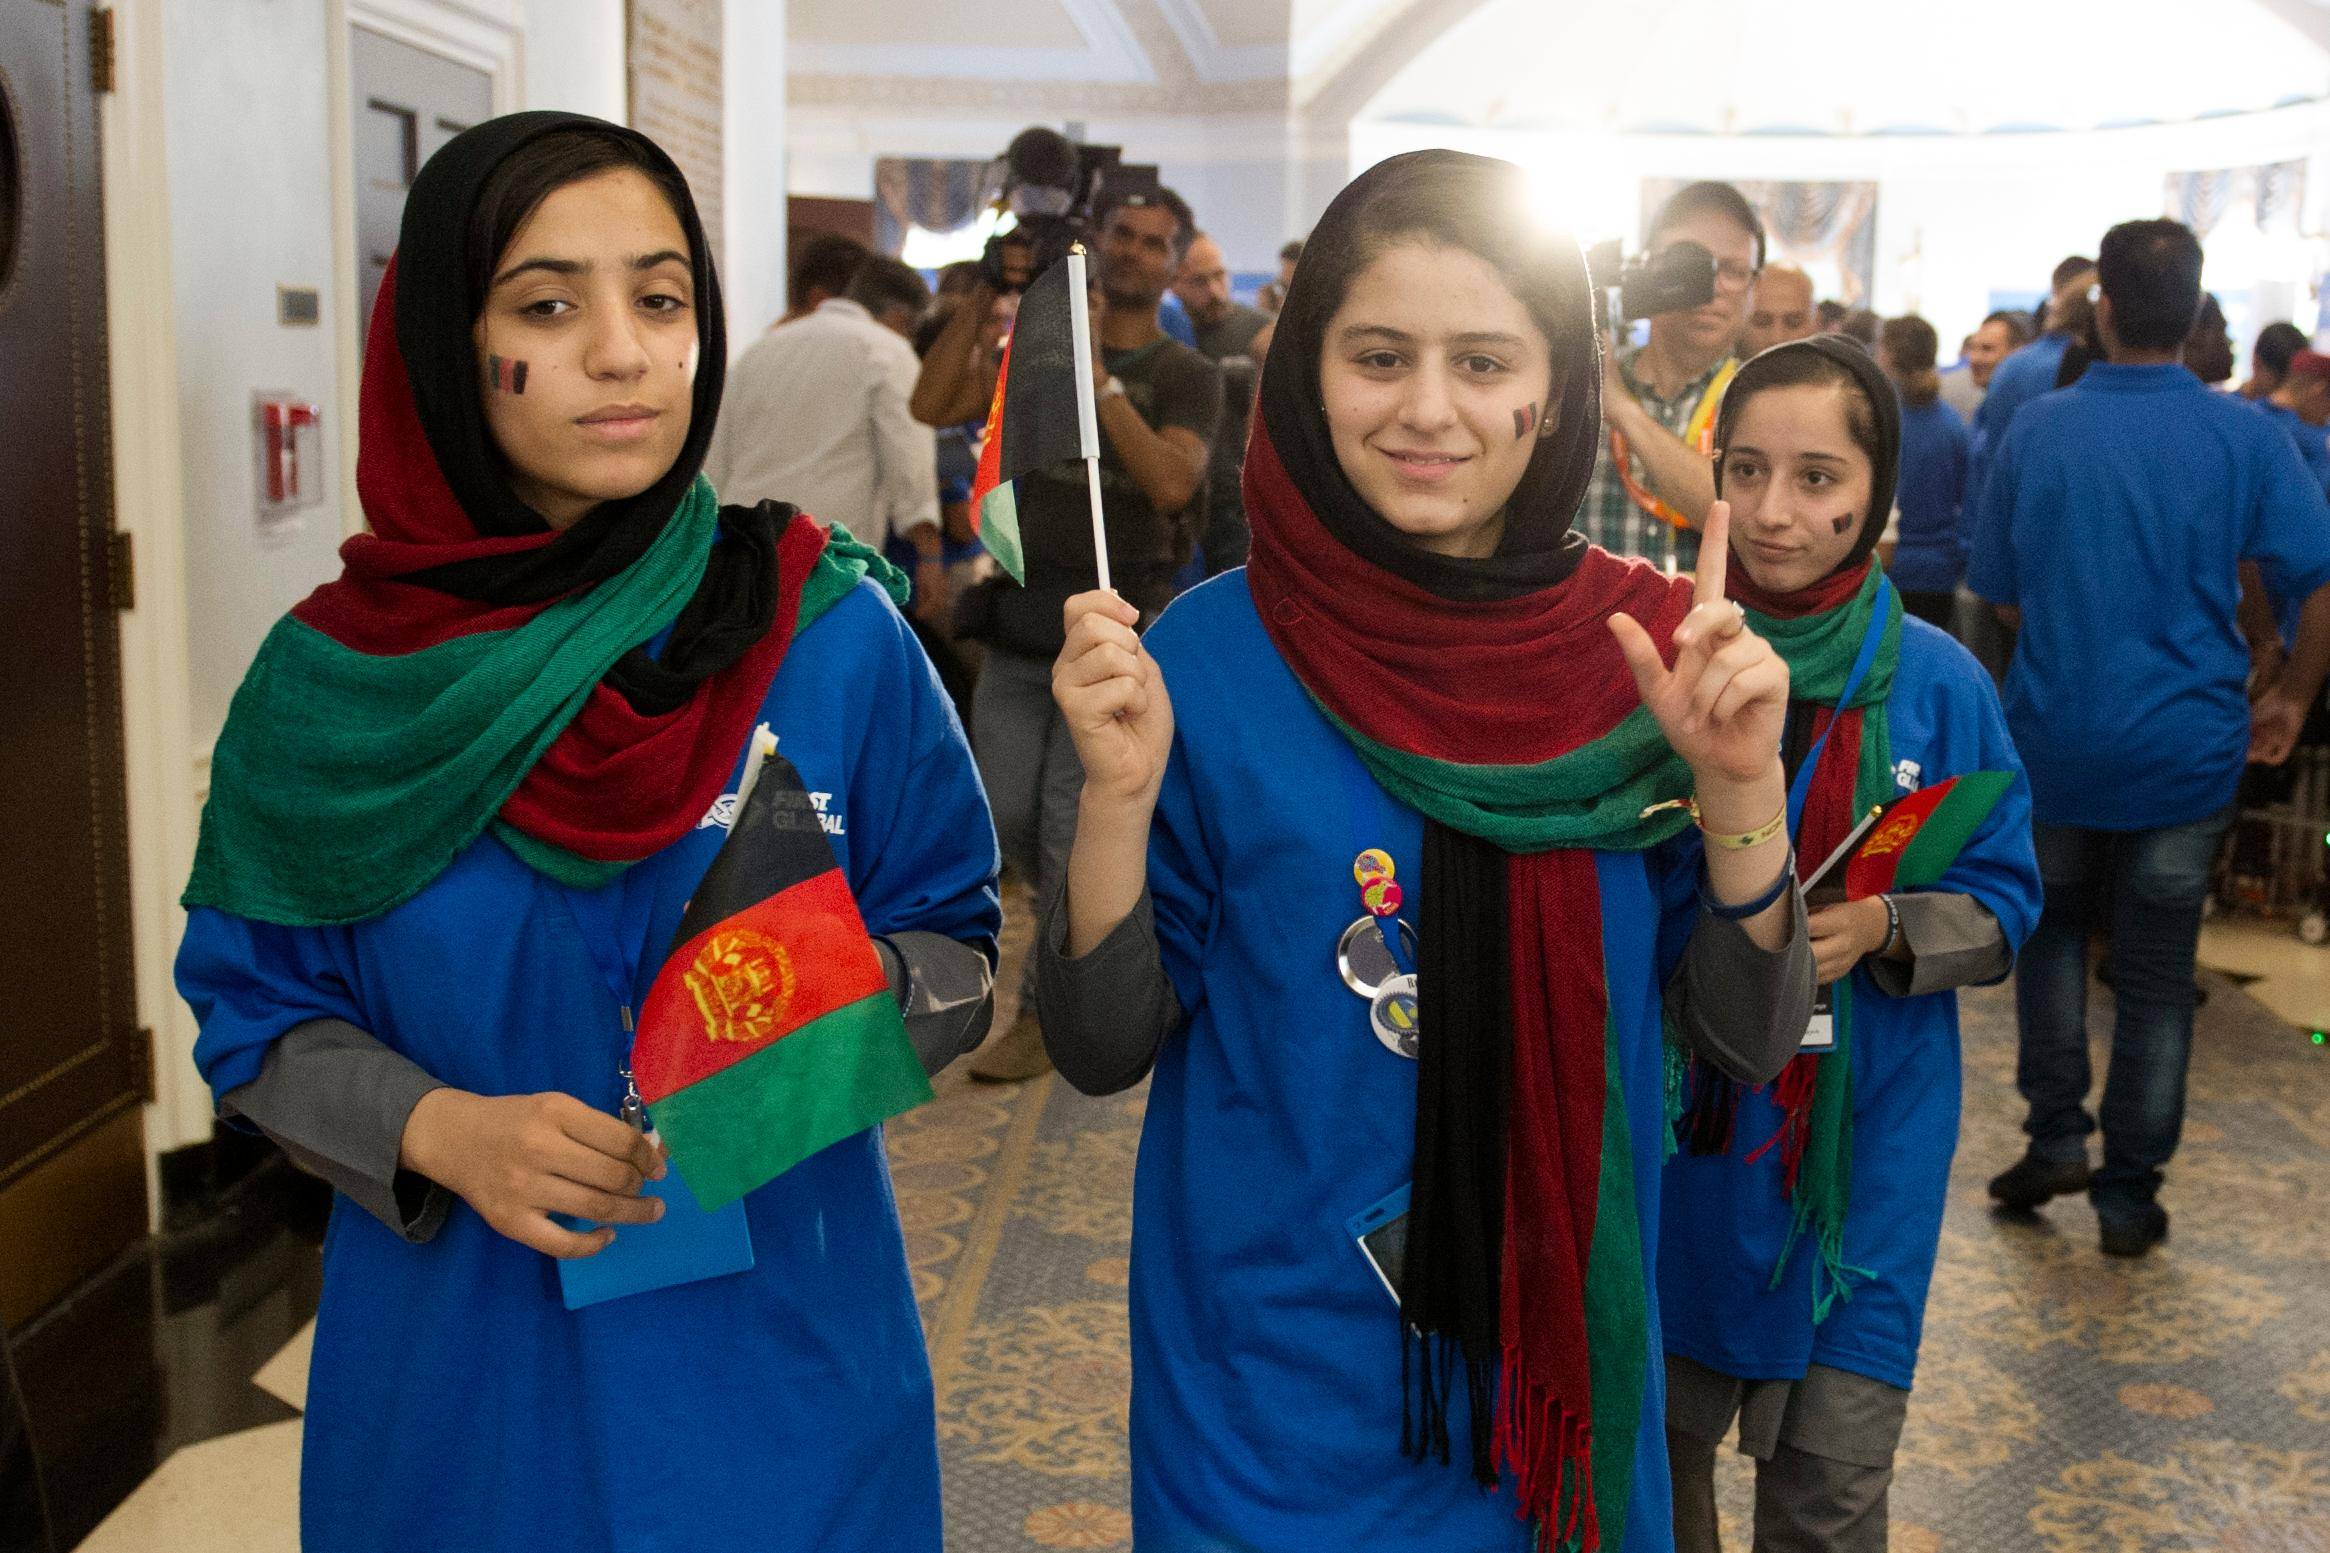 Afghanistan team member Kwasar Rashan, center, walks with her teammates to line-up for the opening ceremony march of the FIRST Global Challenge 2017, in Washington, Sunday, July 16, 2017. Twice rejected for U.S. visas, the all-girls robotics team from Afghanistan arrived in Washington early Saturday after an extraordinary, last-minute intervention by President Donald Trump. (AP Photo/Cliff Owen)